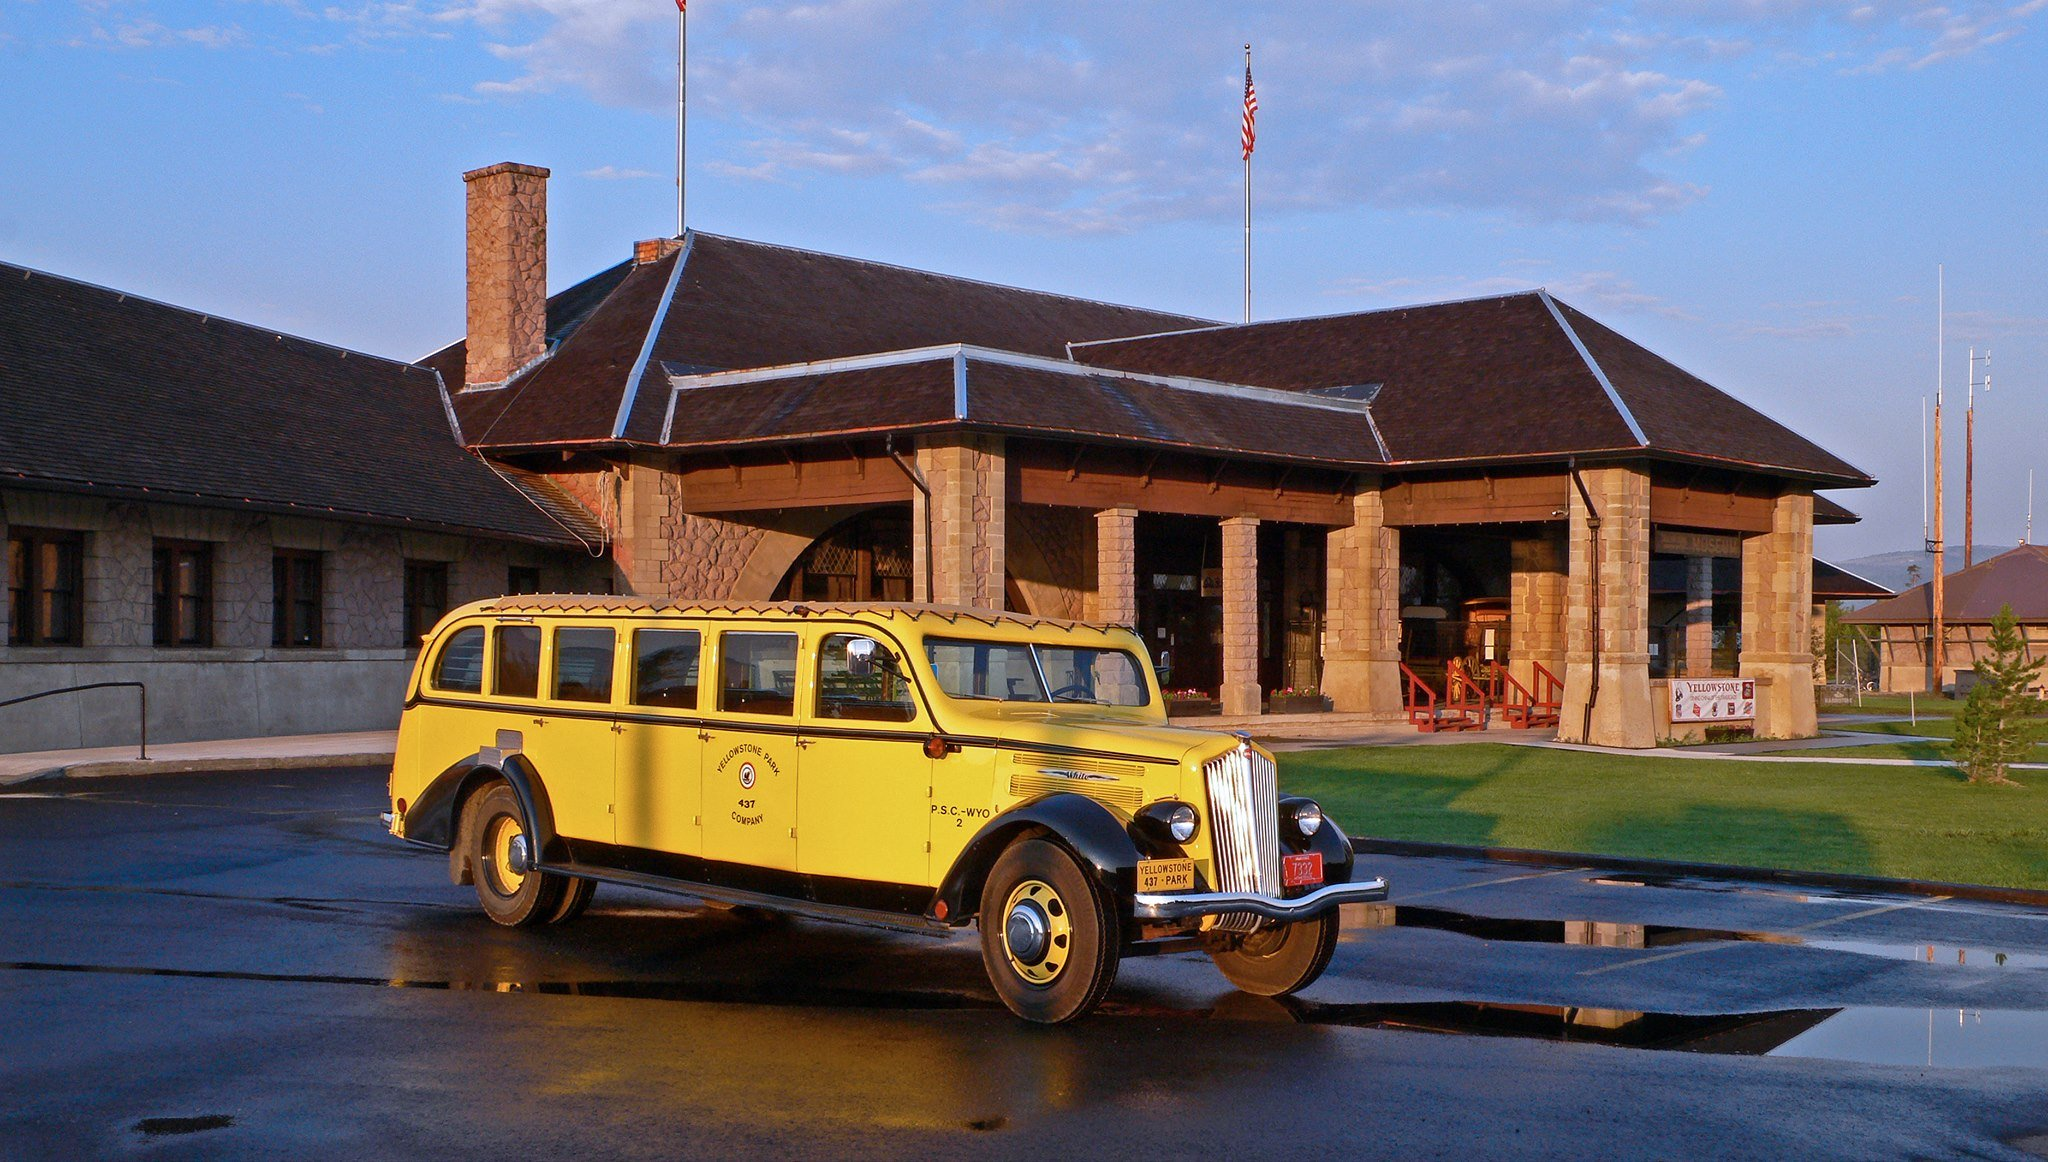 Today, the old depot building is used to house the Yellowstone Historic Center Museum. In front of the museum sits a 1938 White Motor Model 706 bus, used as a tour bus in Yellowstone National Park.